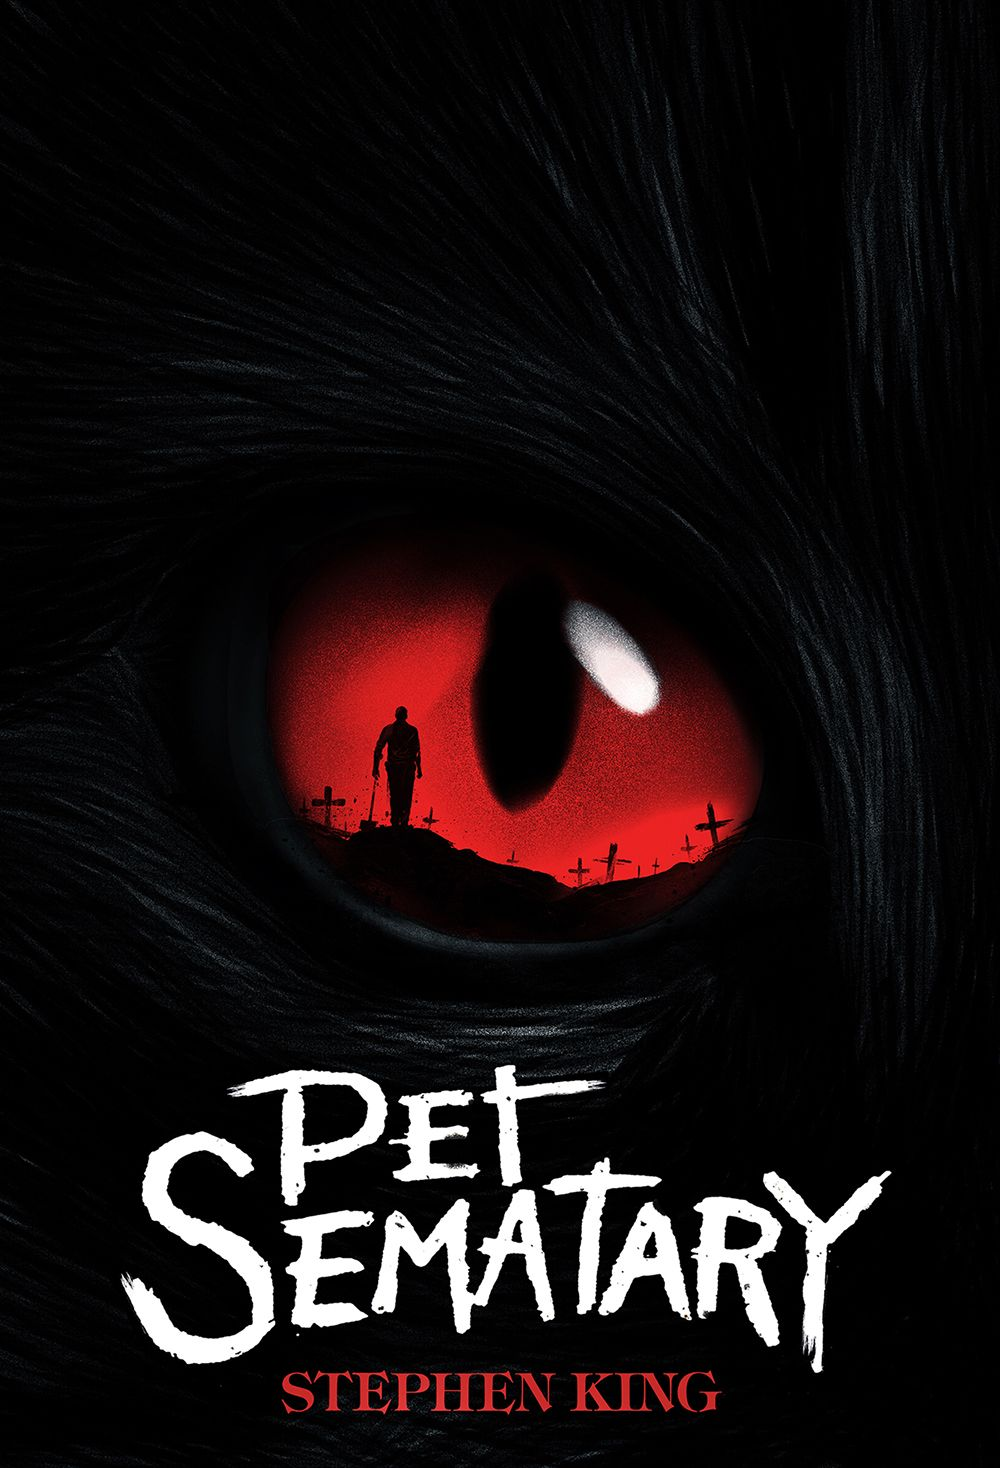 Pin By Eean Swekel On Horror Posters Stephen King Movies Pet Sematary Classic Horror Movies